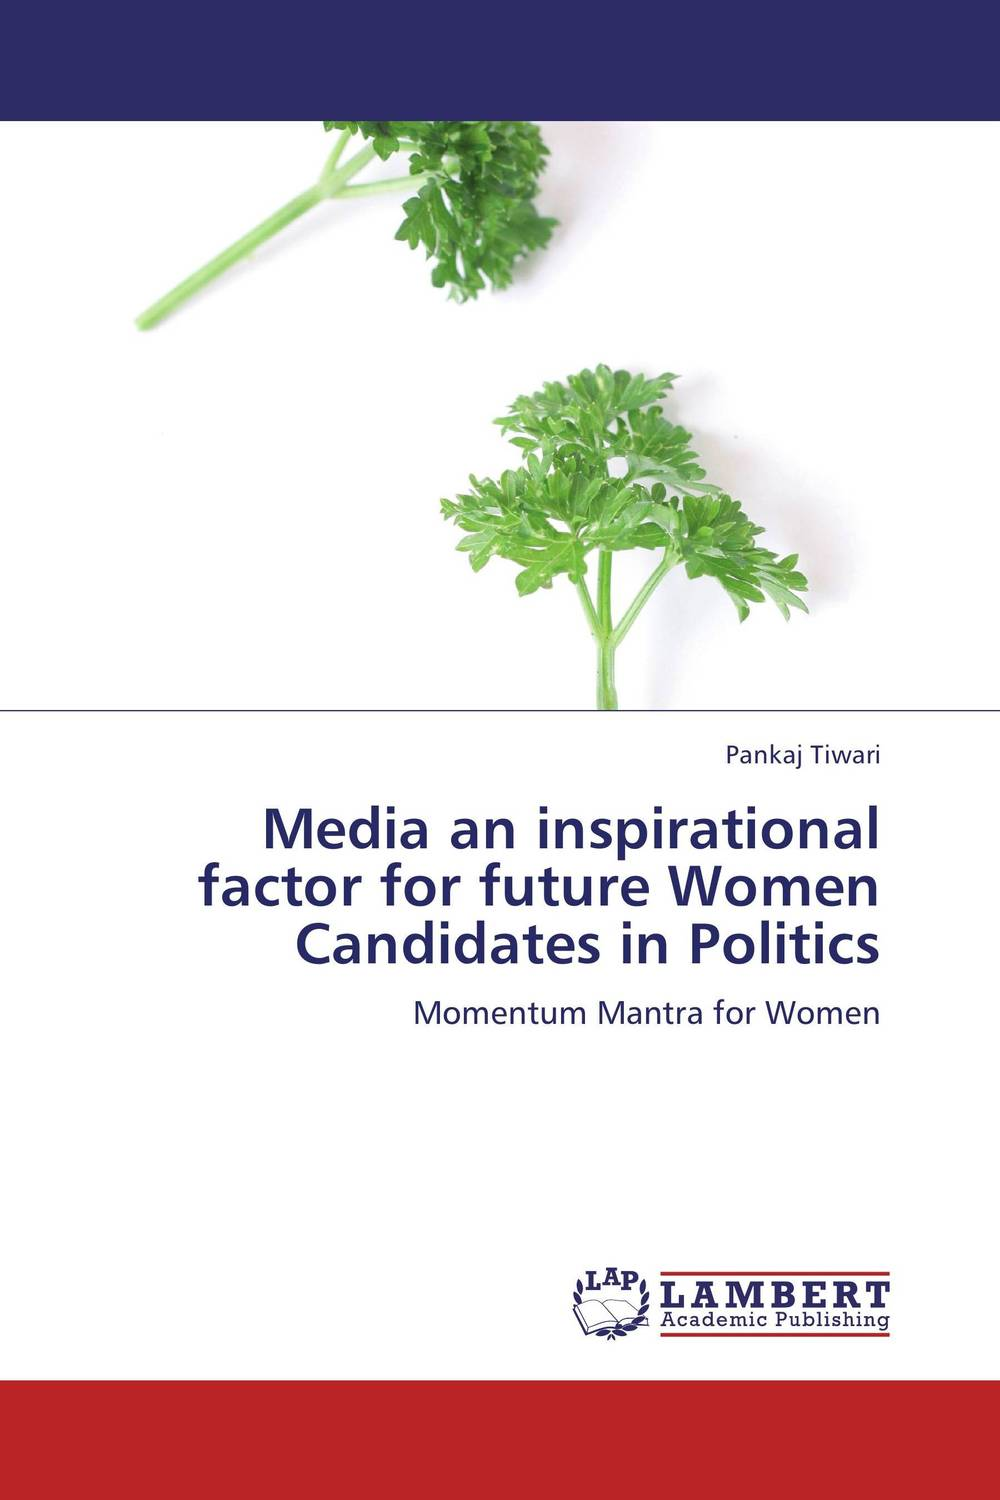 Media an inspirational factor for future Women Candidates in Politics